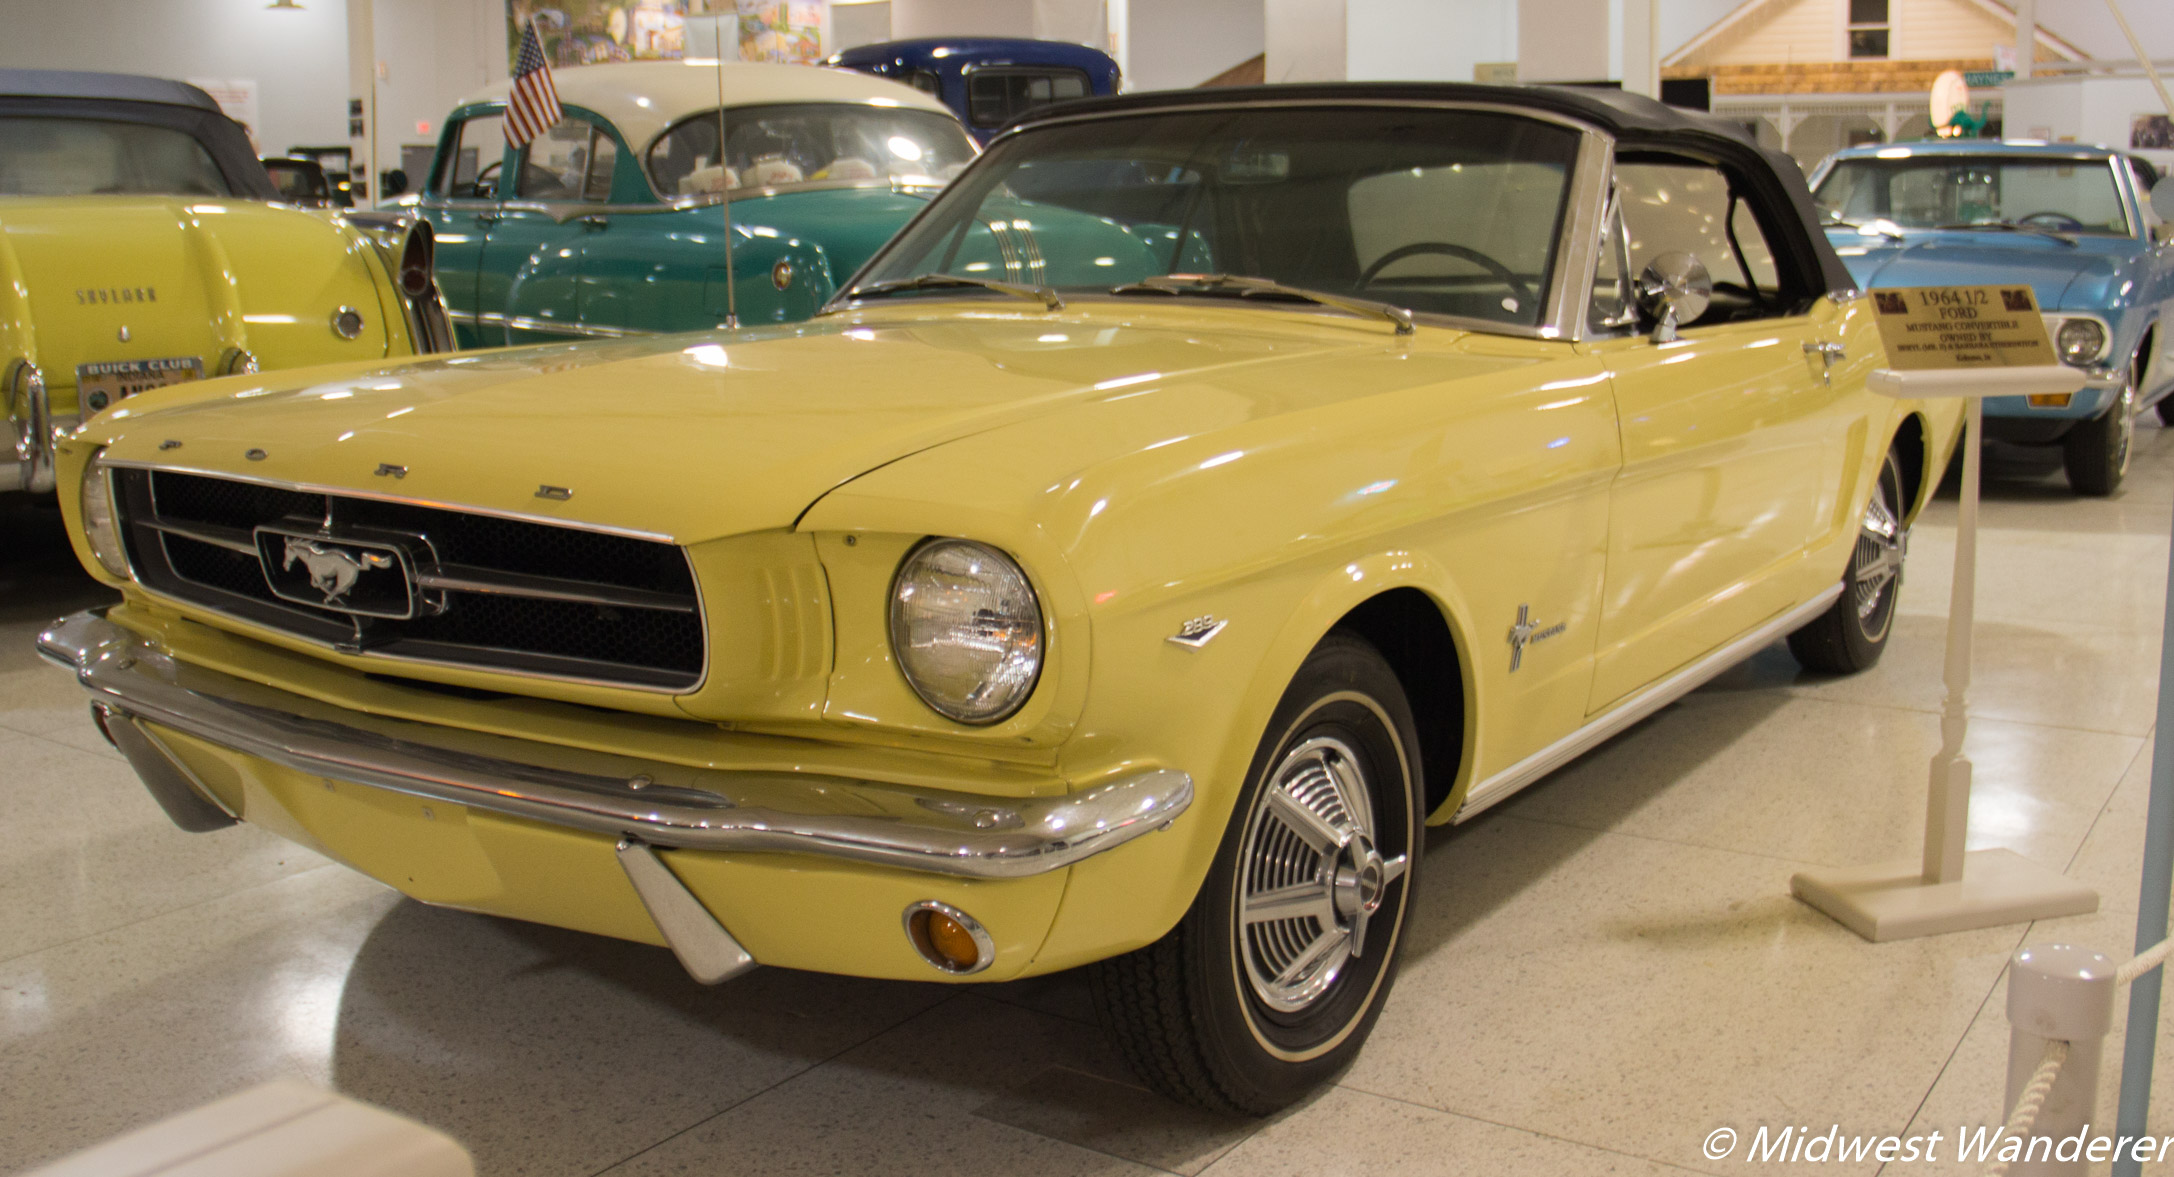 A rare 1964 1/2 Ford Mustang convertable